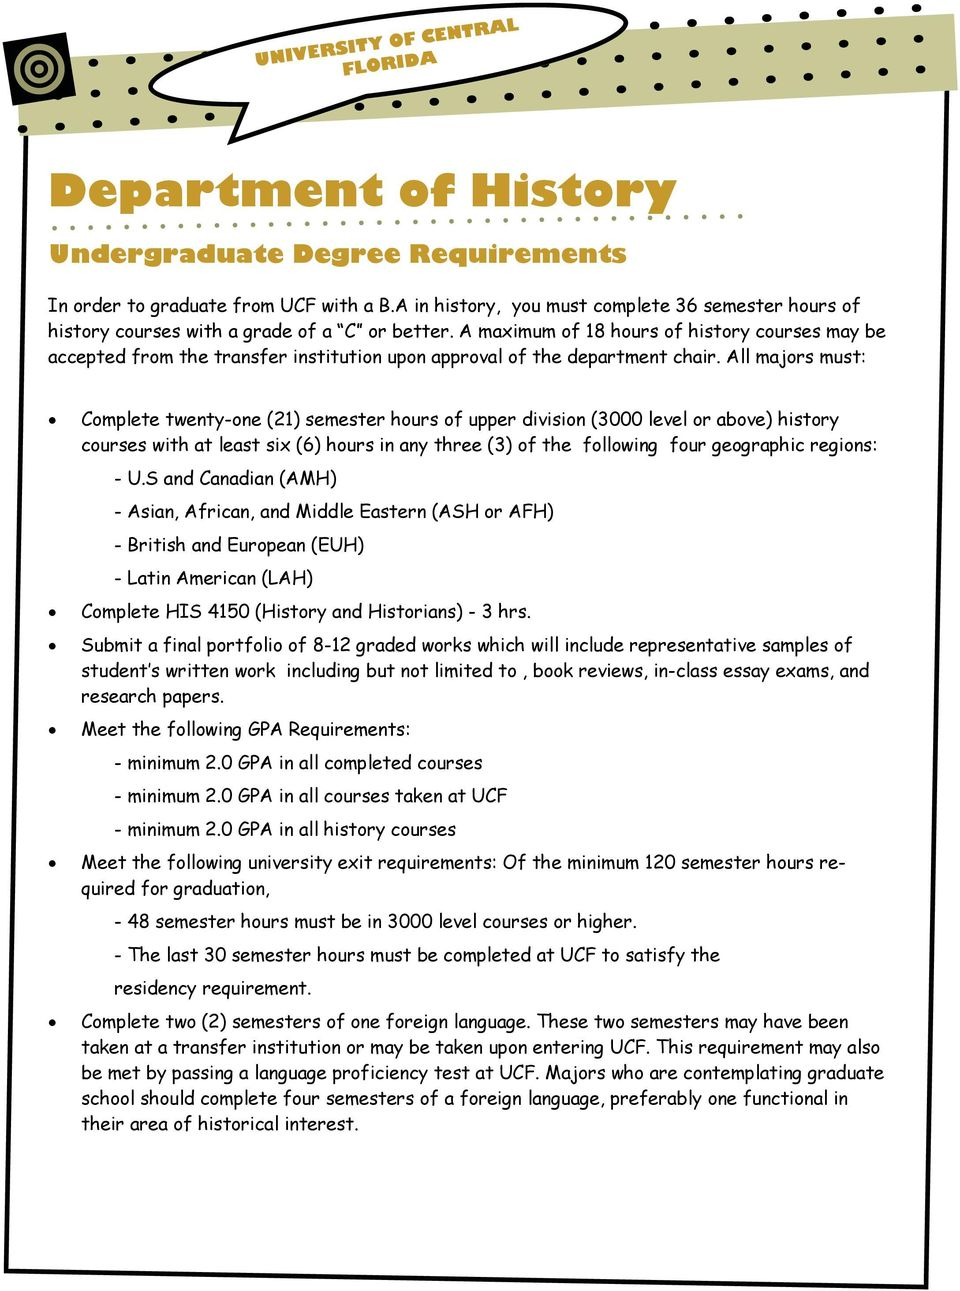 A maximum of 18 hours of history courses may be accepted from the transfer institution upon approval of the department chair.